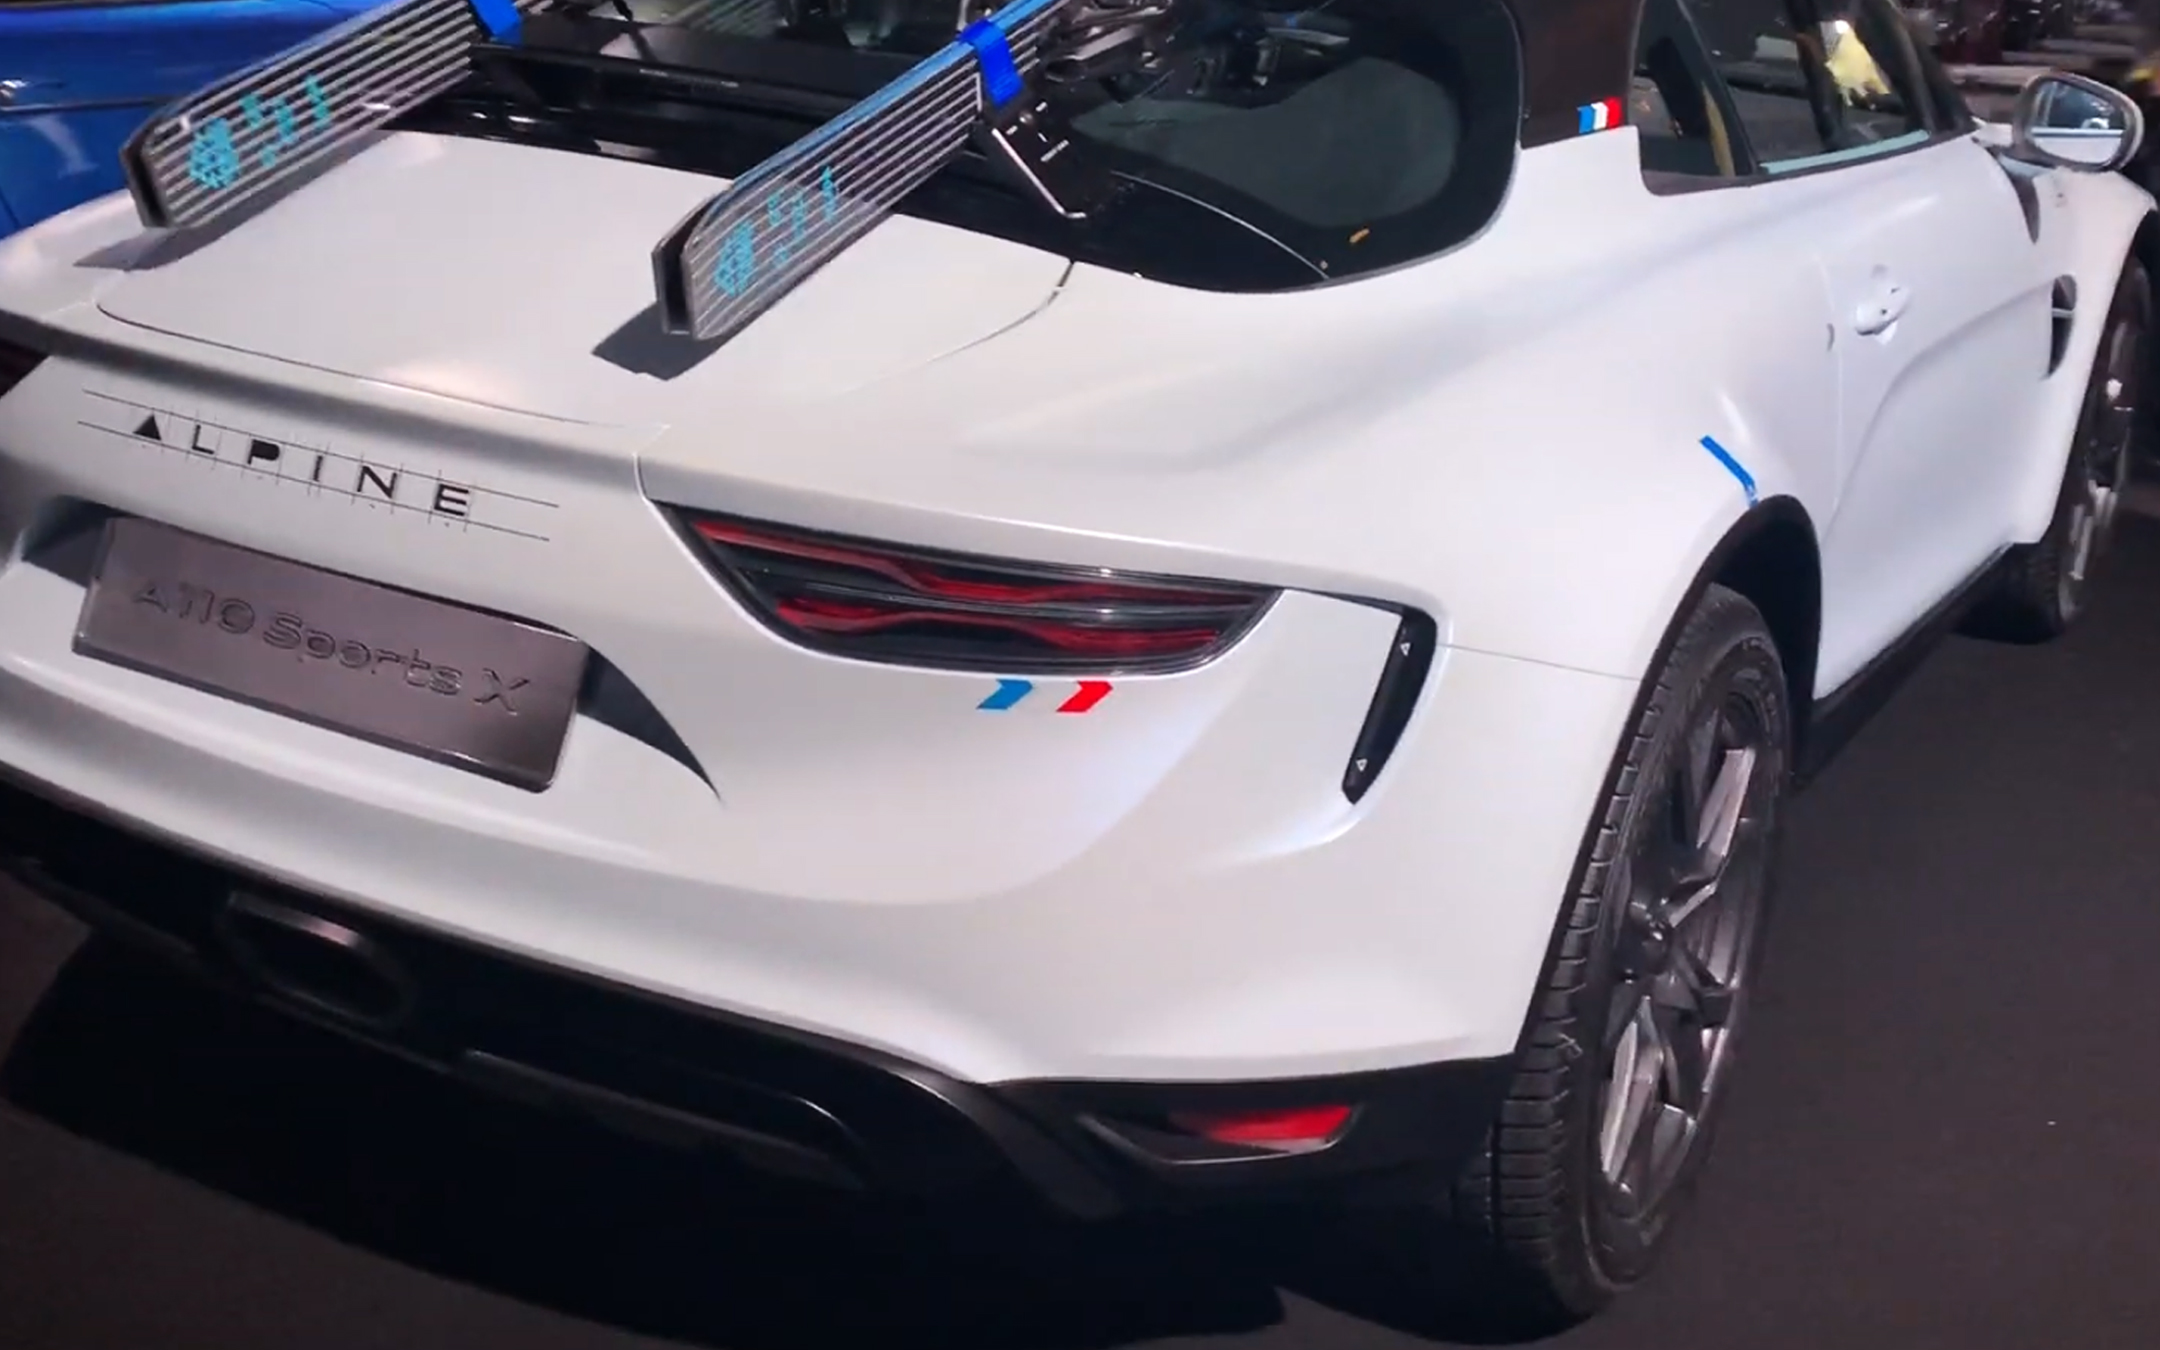 Alpine A110 Sports X - 2020 - rear light - preview - showcar - photo screen video - FAI2020